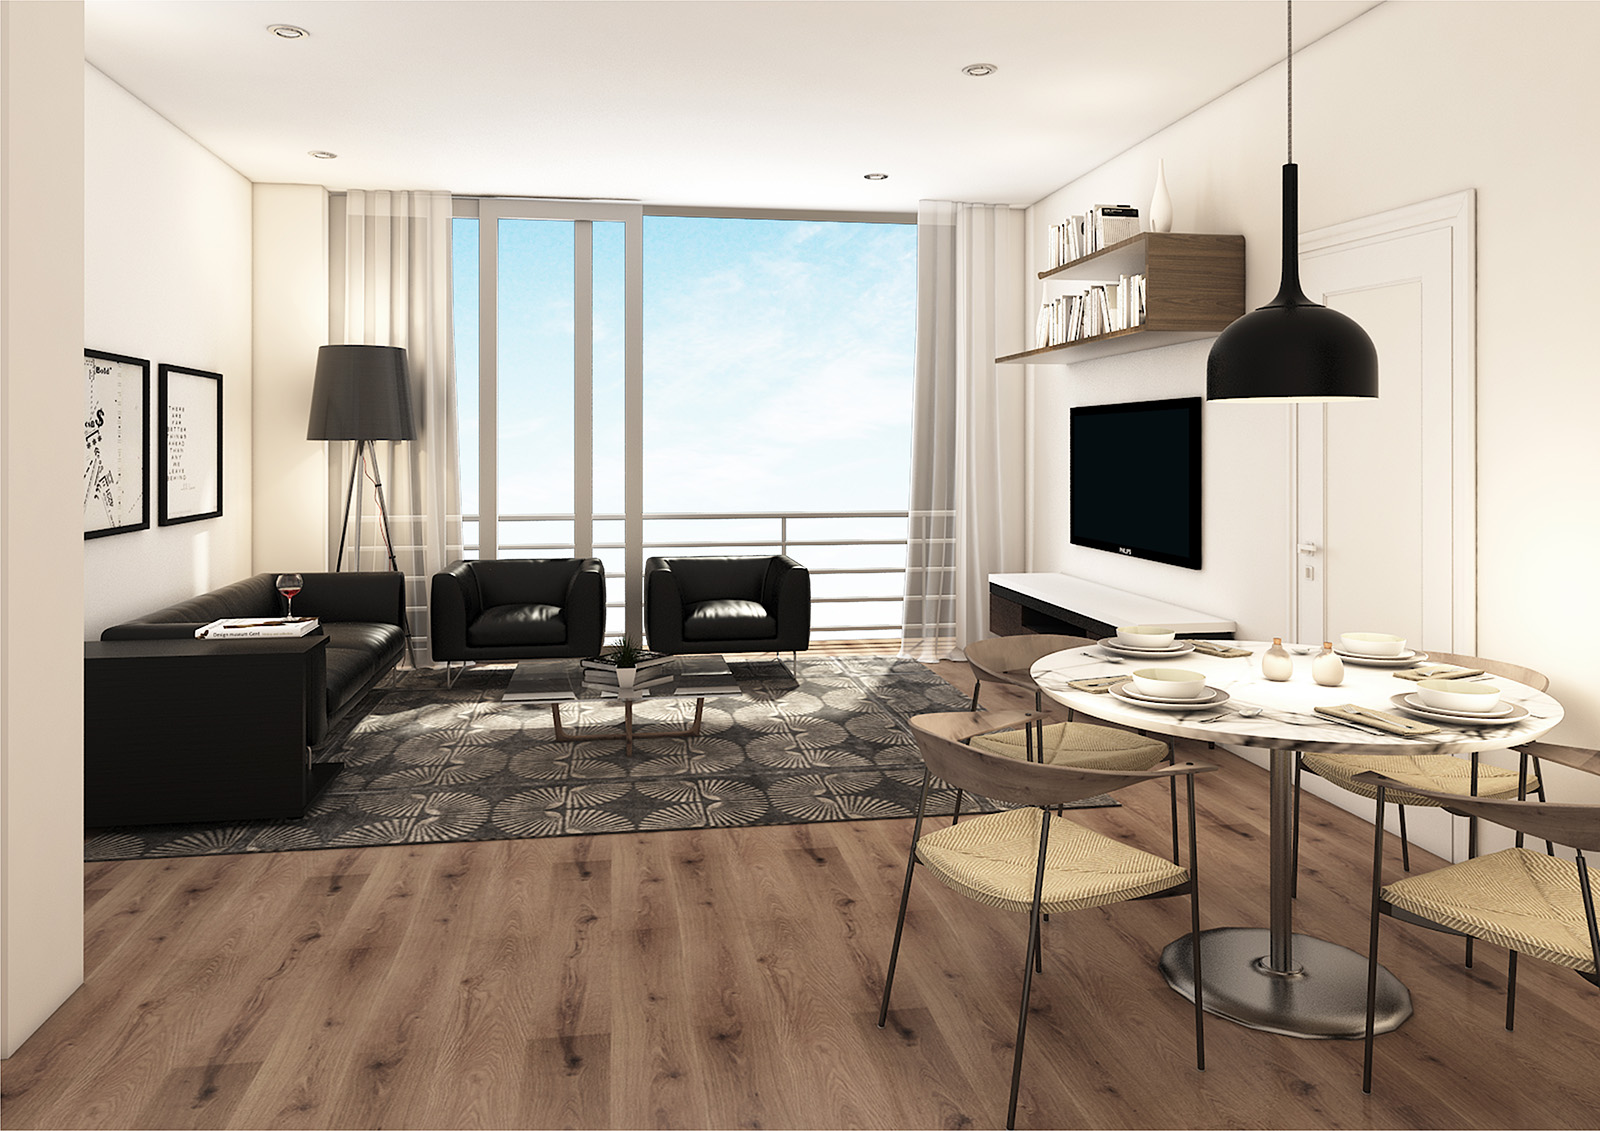 Just Invest, one-on-whiteley, unit-e, dining-living-viewa